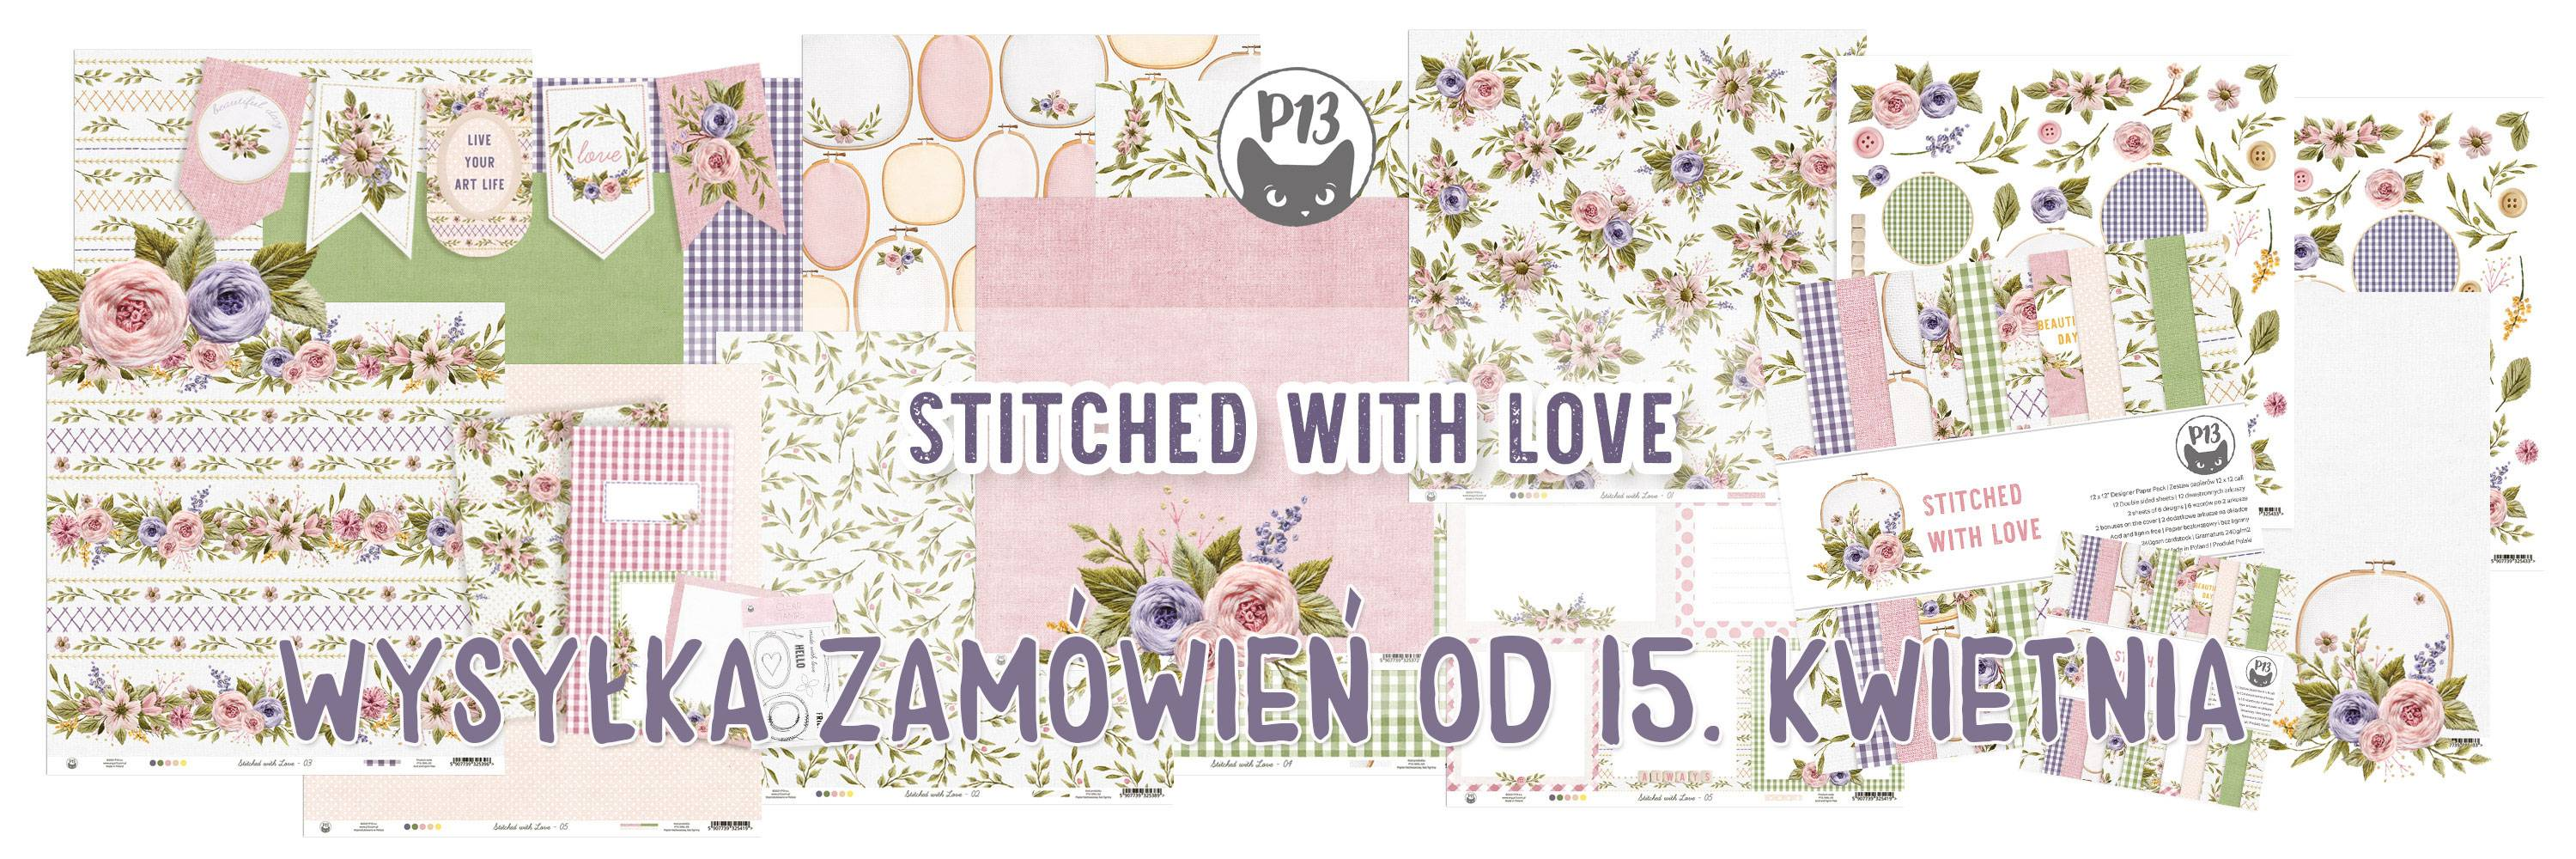 https://store.p13.com.pl/pl/95-nowosc-stitched-with-love